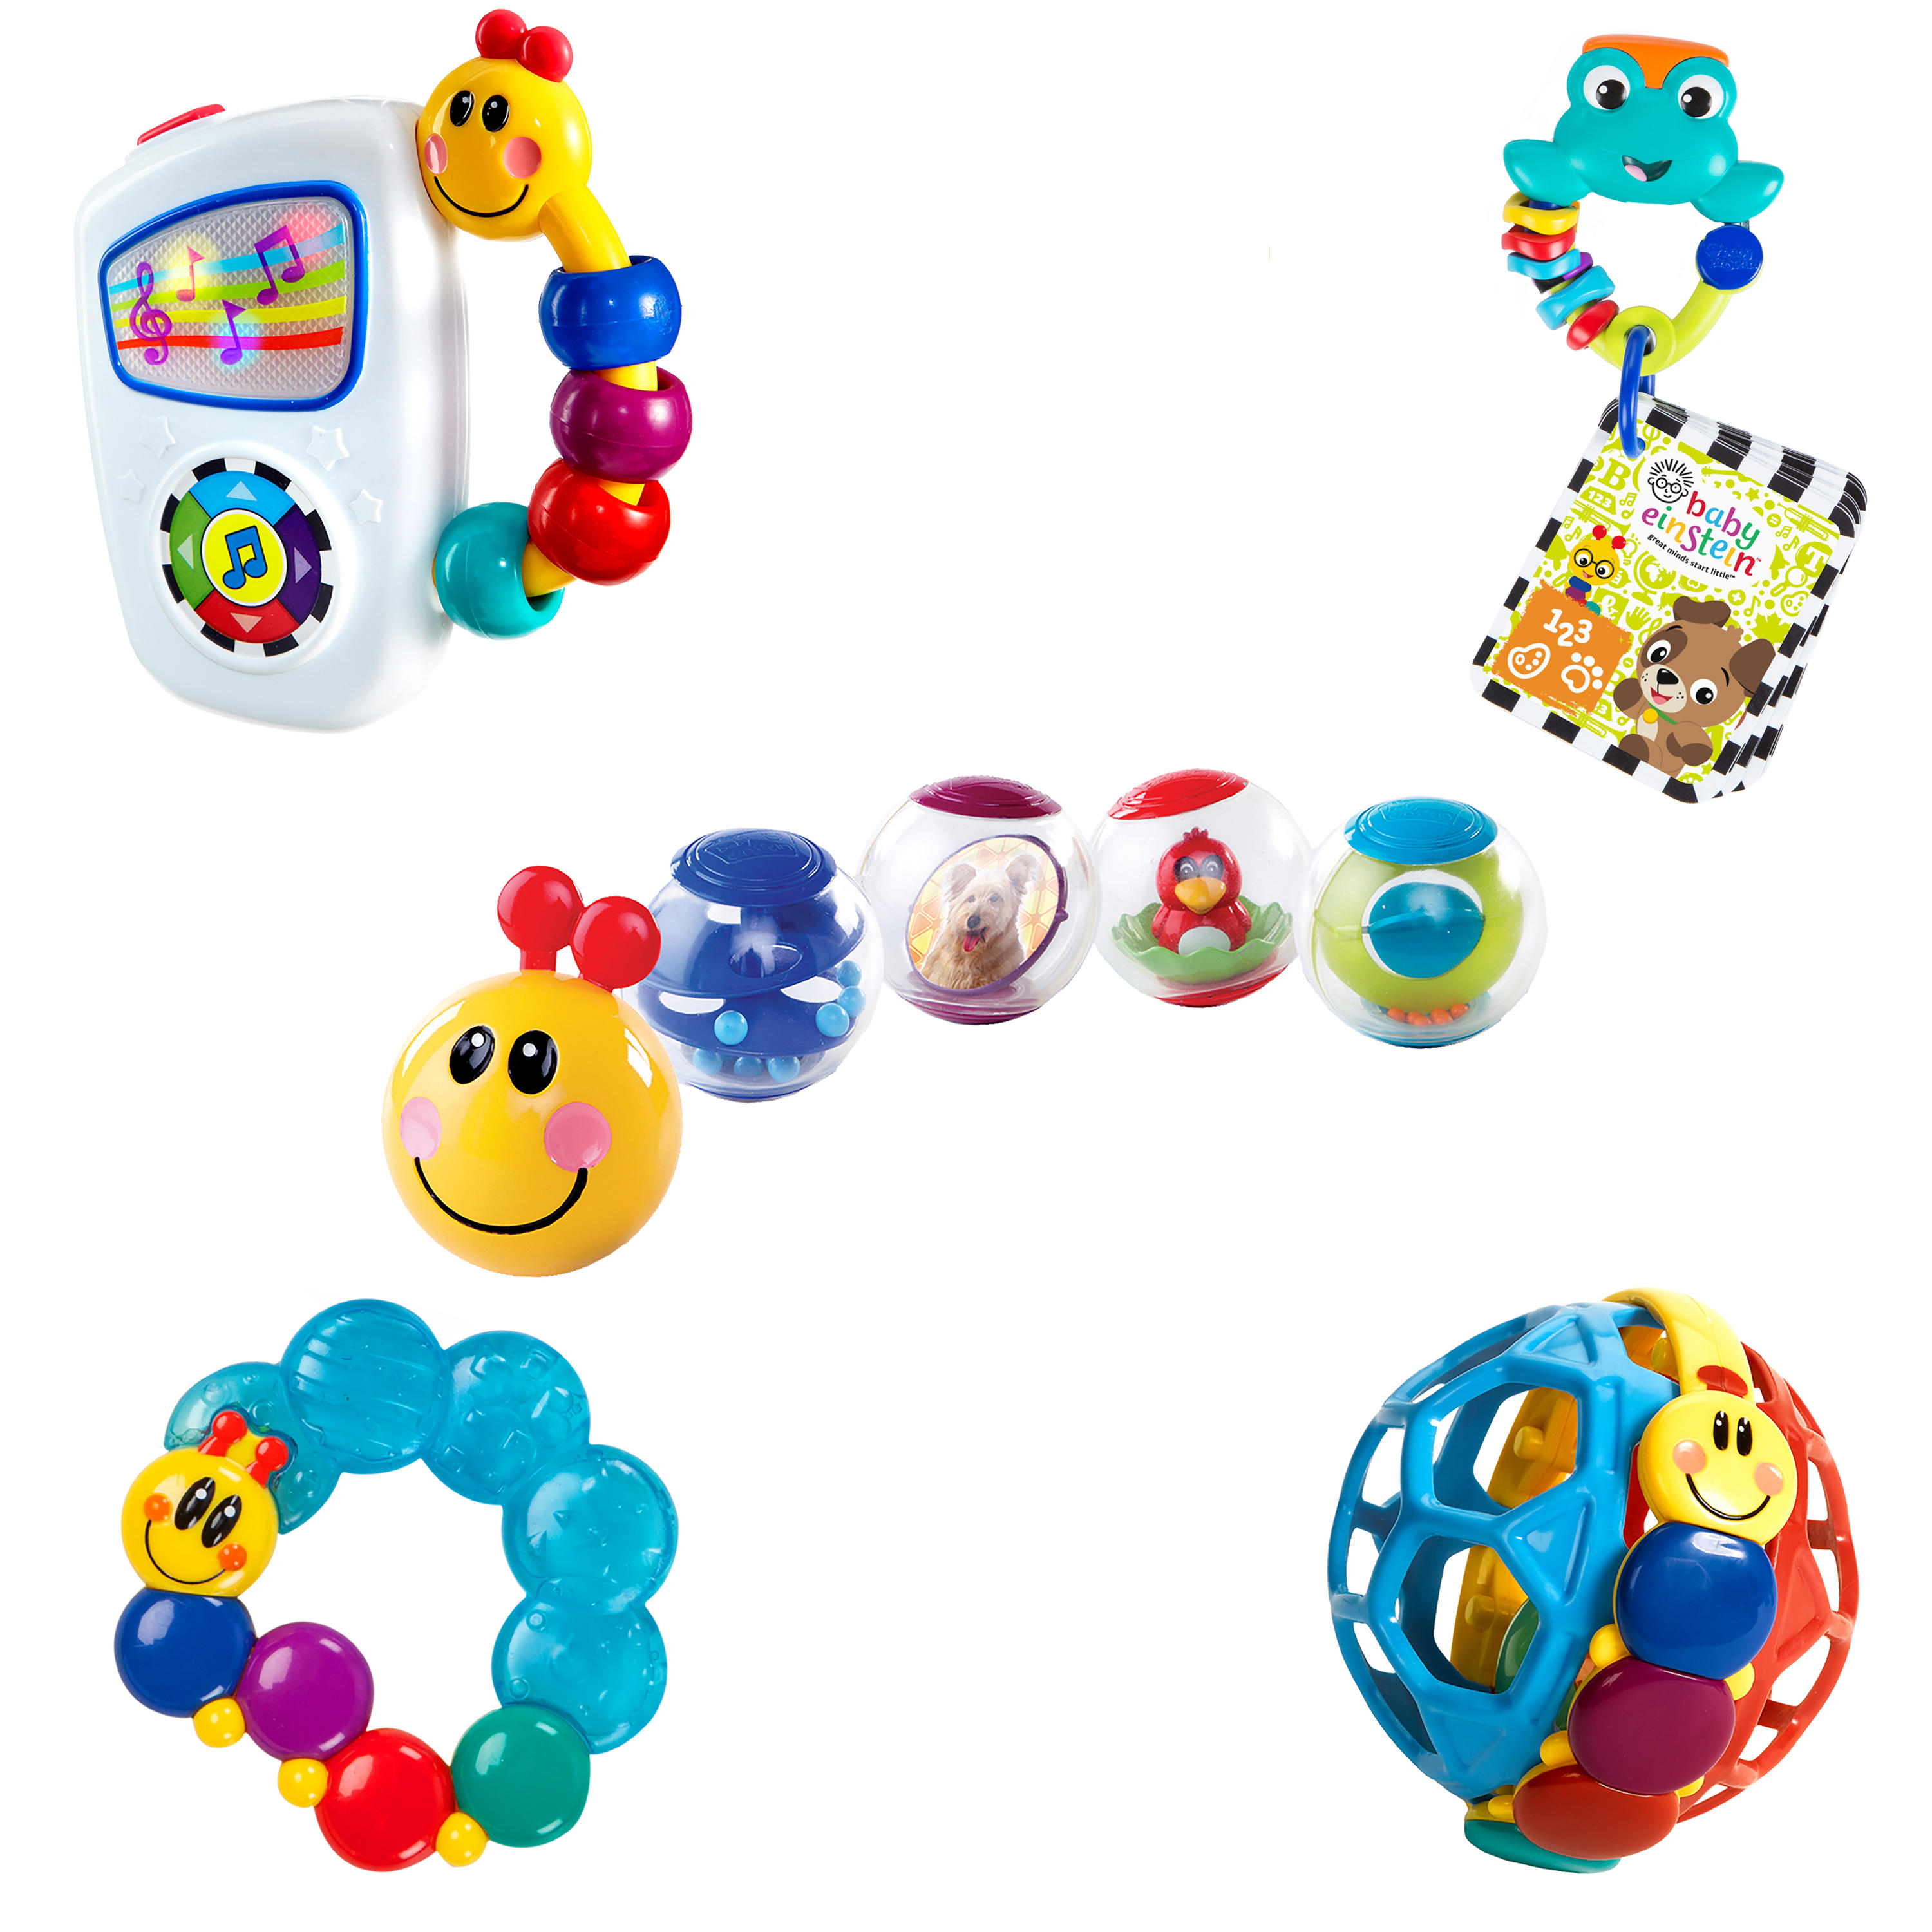 Baby Einstein Discovery Essentials Gift Pack